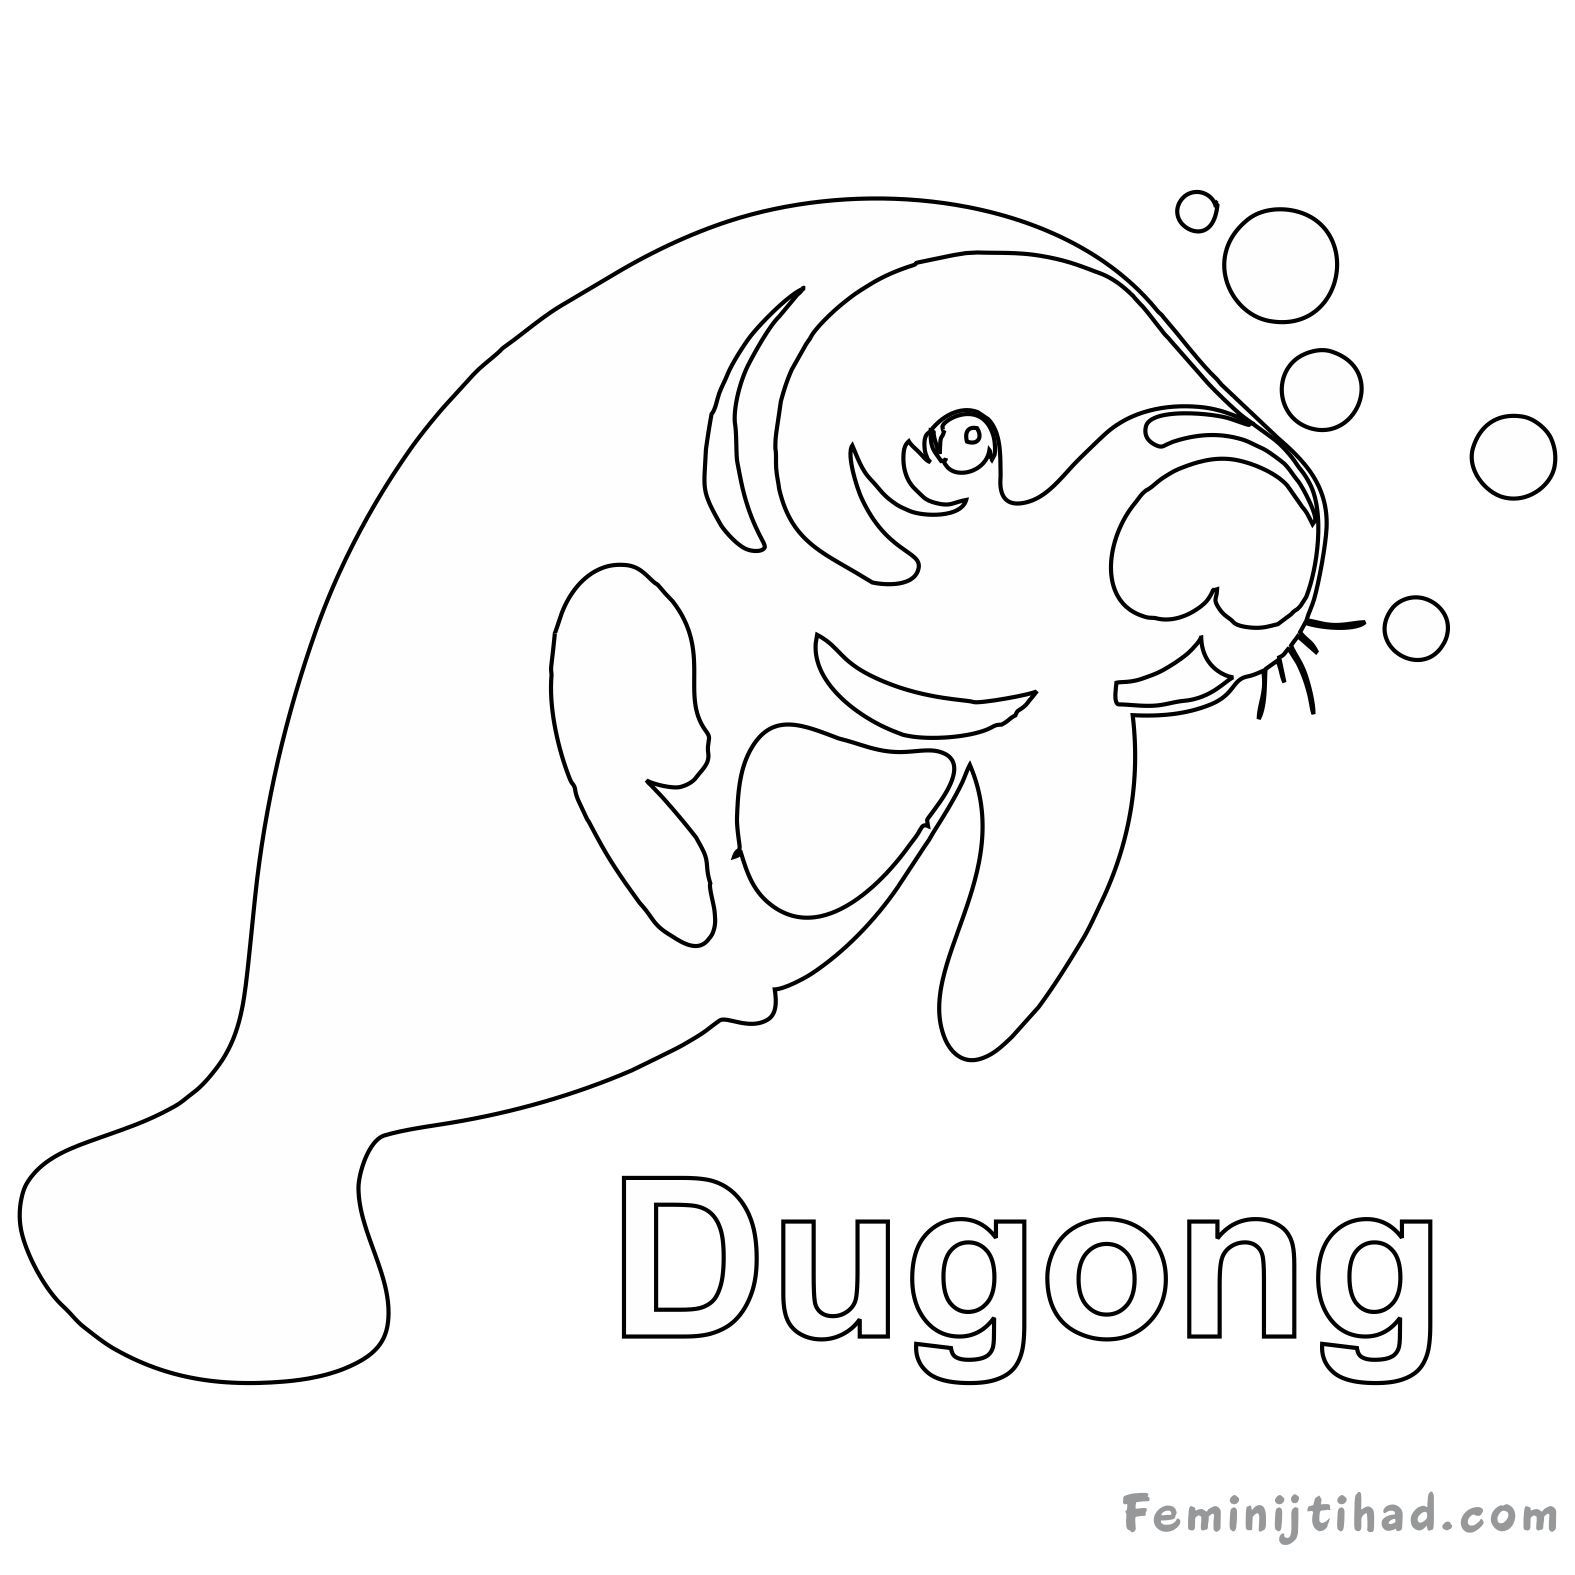 Dugong Coloring Pages Free To Print